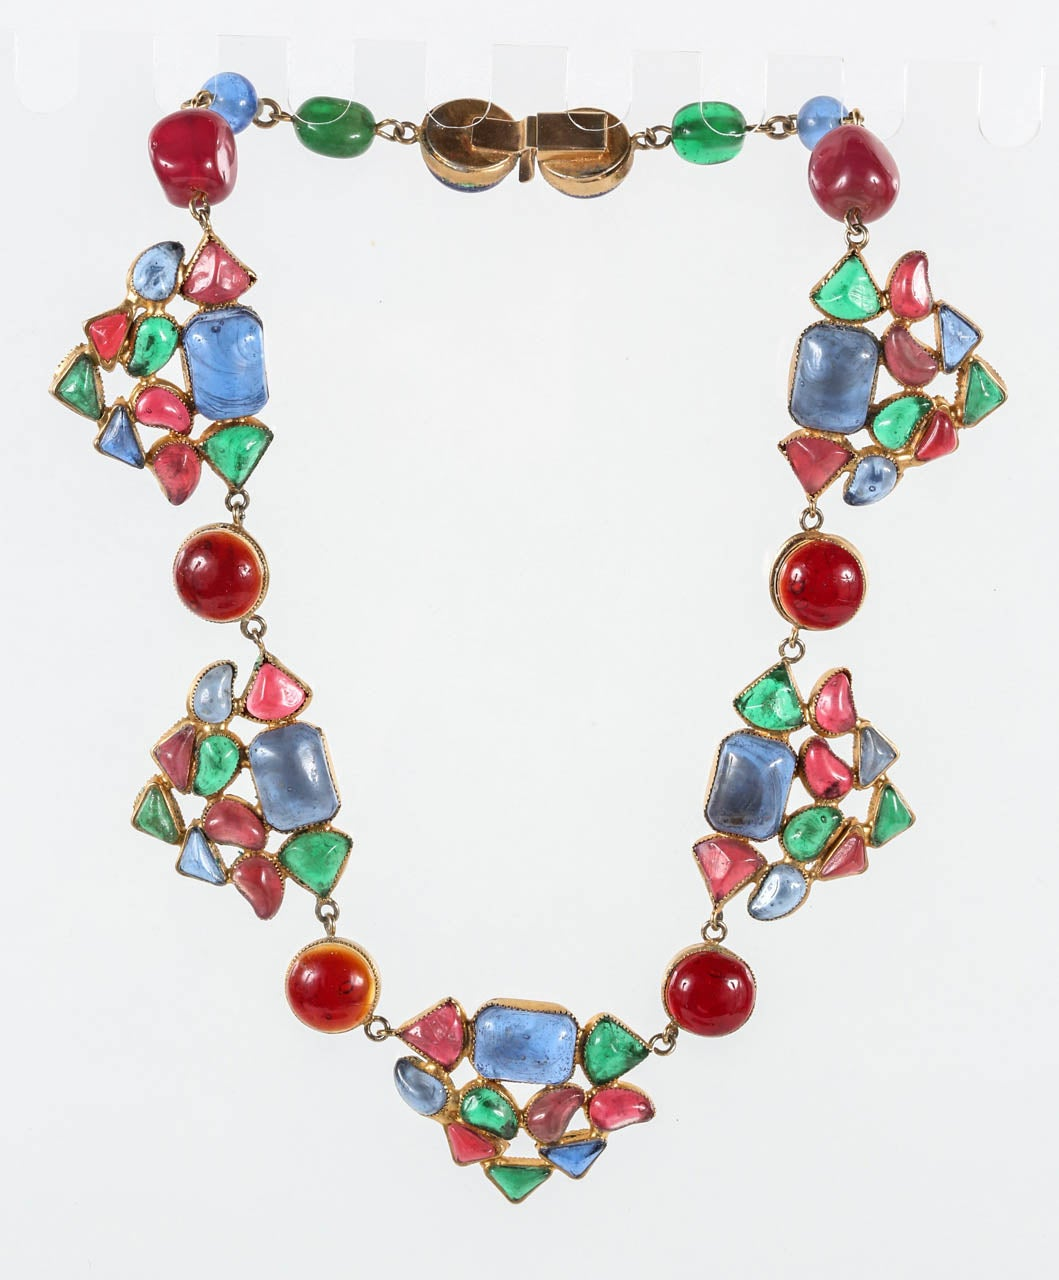 A beautiful and colorful Gripoix necklace in pink, red, green & blue. Although unmarked, based on the quality of this piece, it is undoubtedly by Chanel.